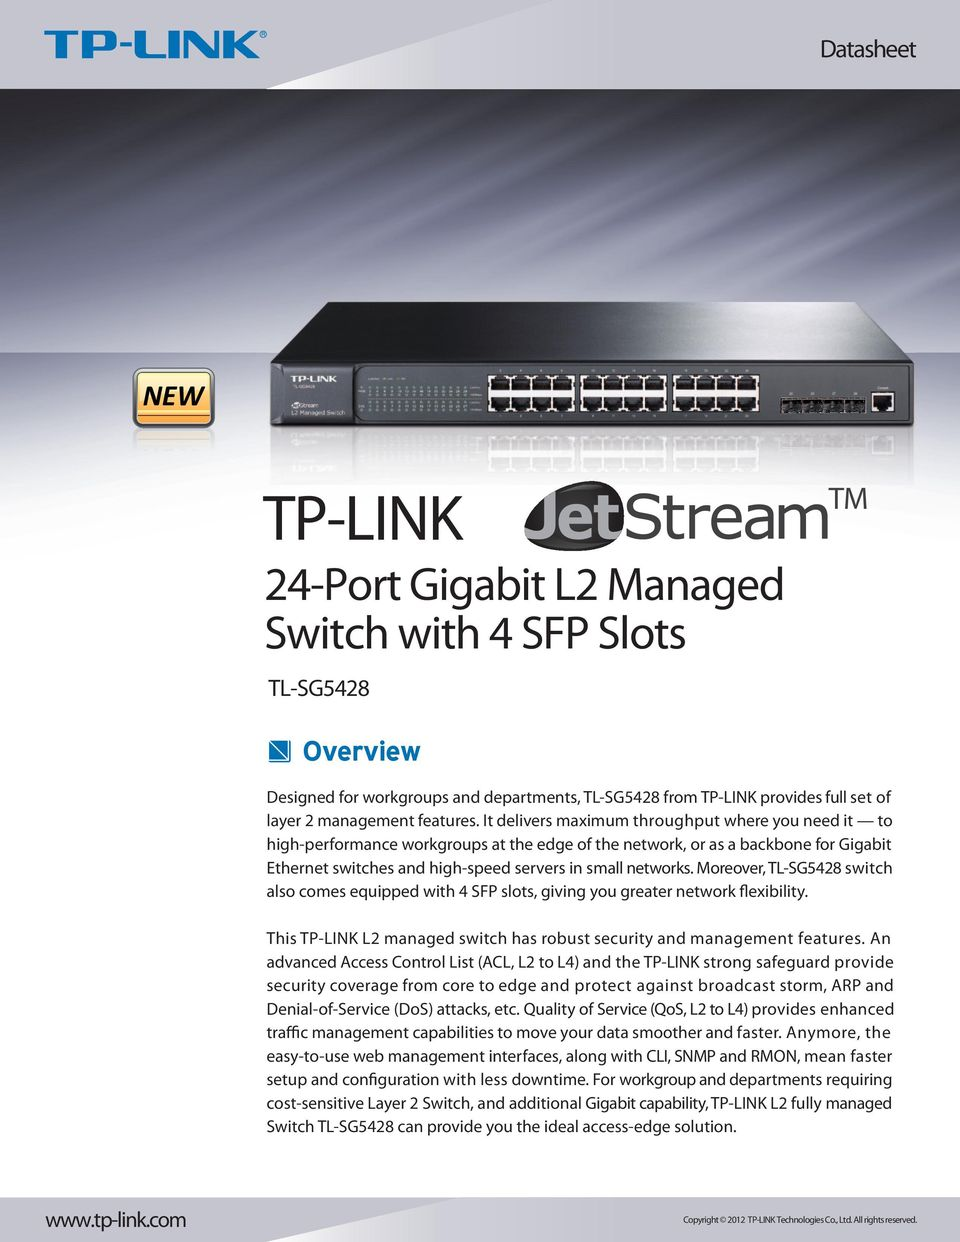 Moreover, switch also comes equipped with 4 SFP slots, giving you greater network flexibility. This TP-LINK L2 managed switch has robust security and management features.